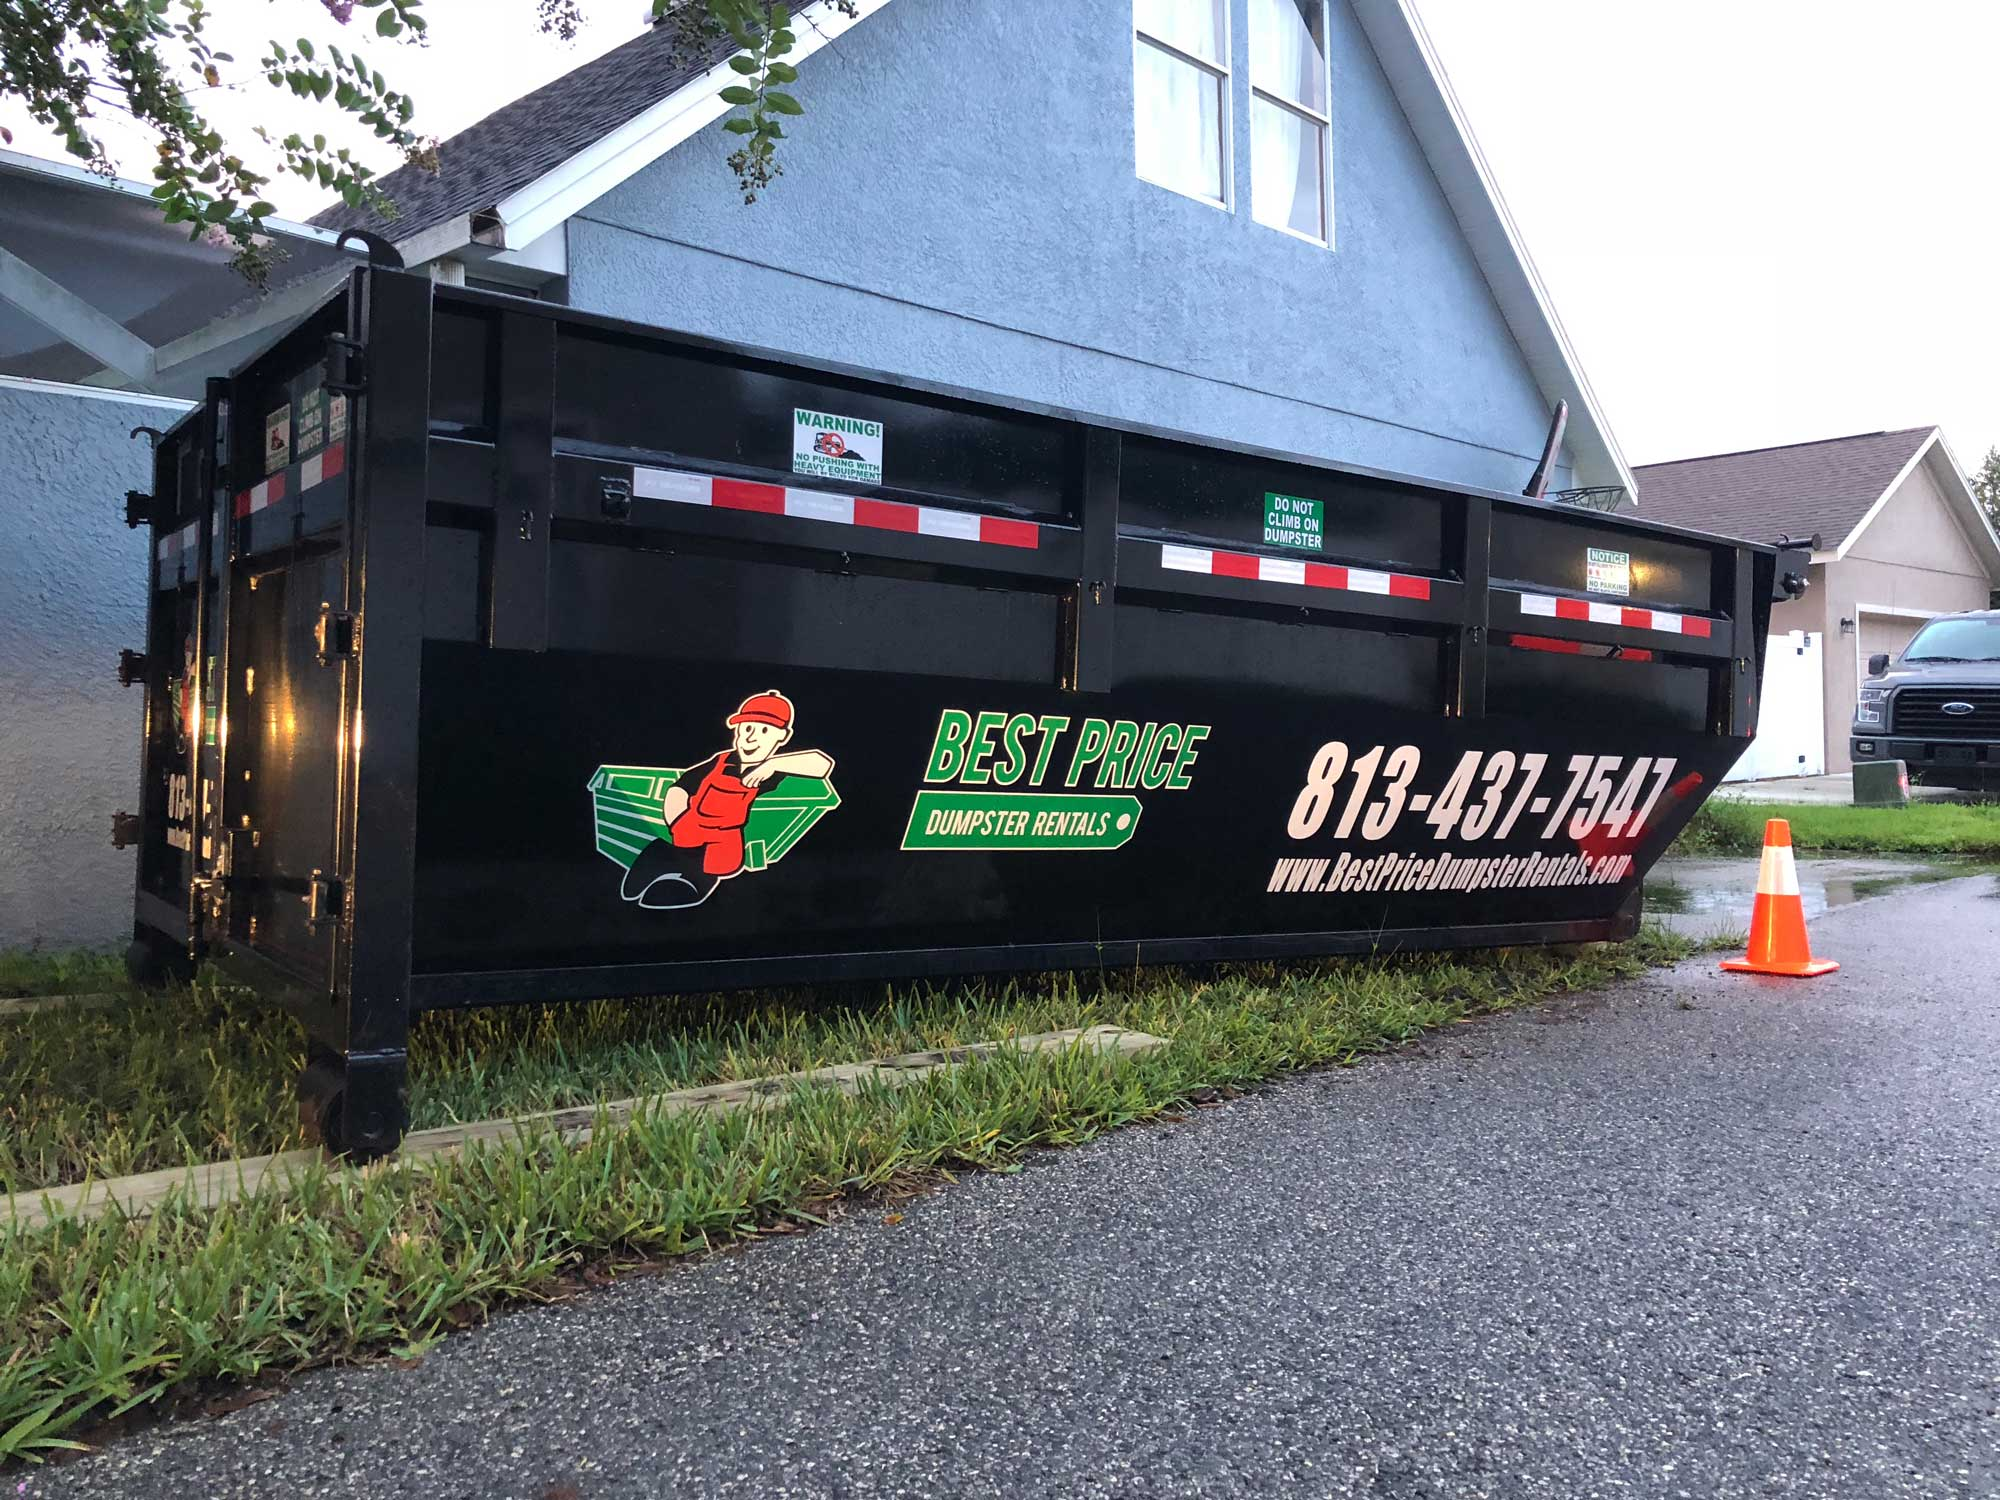 Dumpster for residential